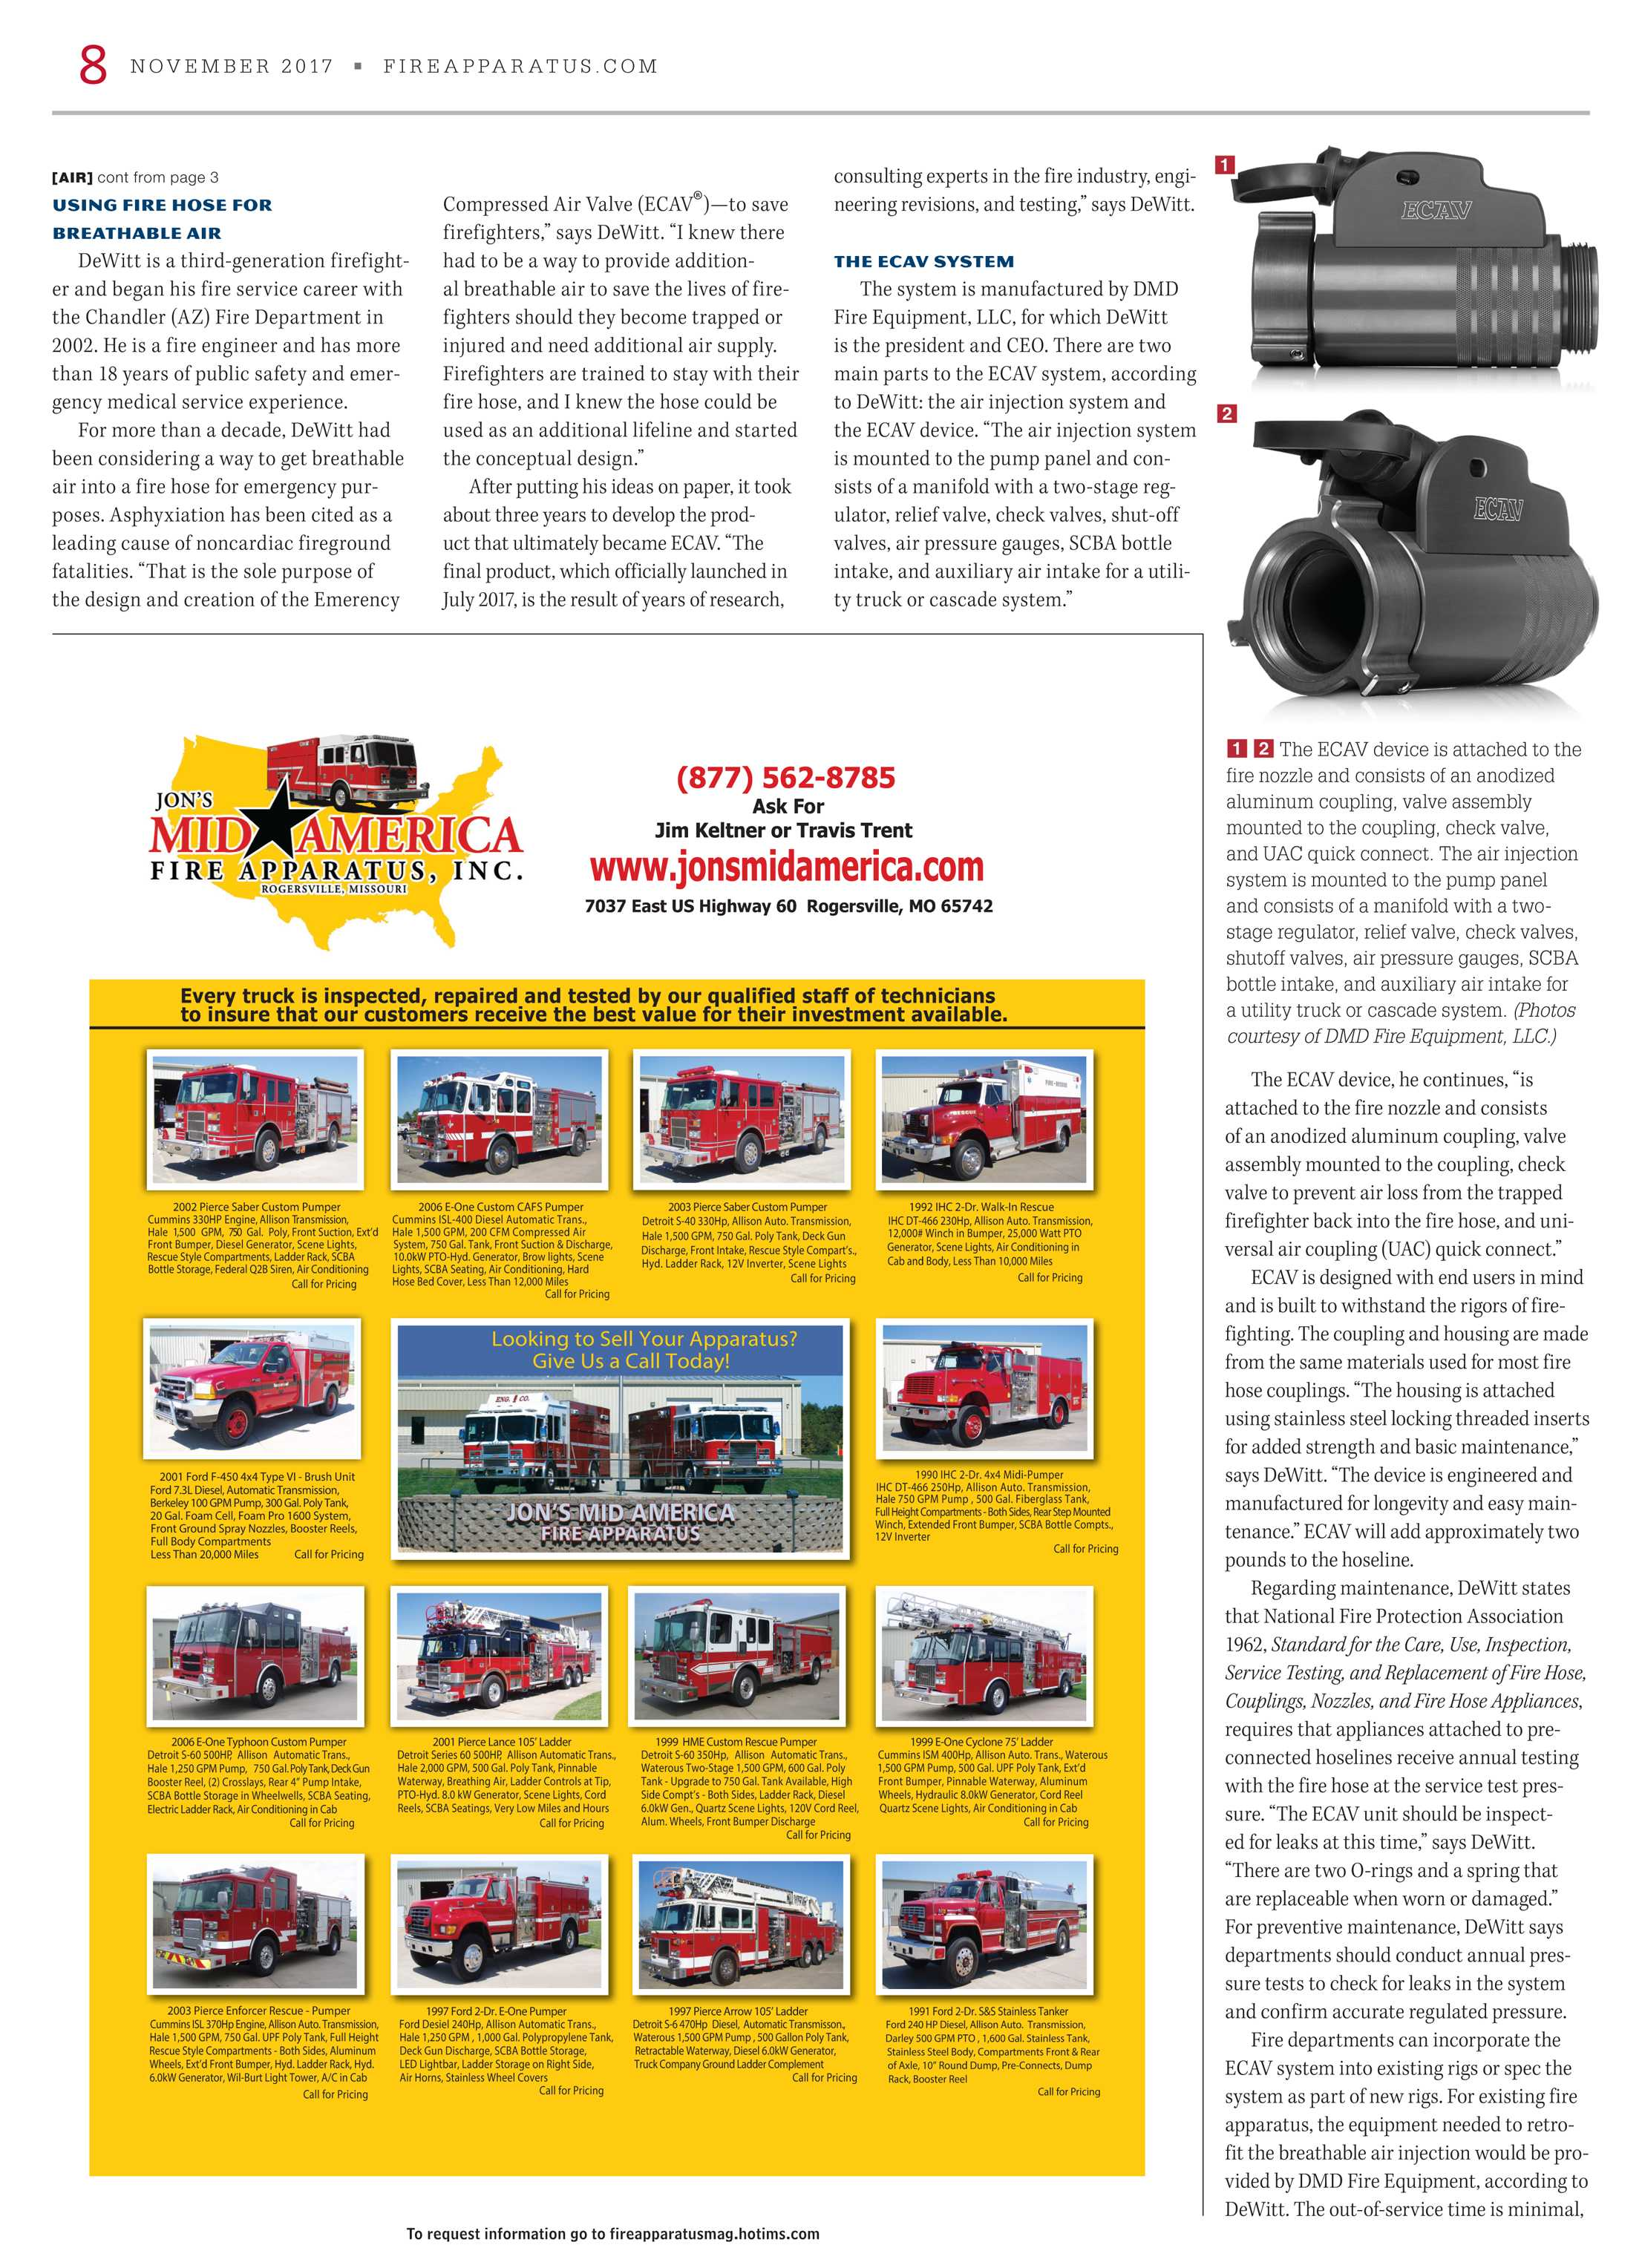 Fire Apparatus Magazine - November 2017 - page 8